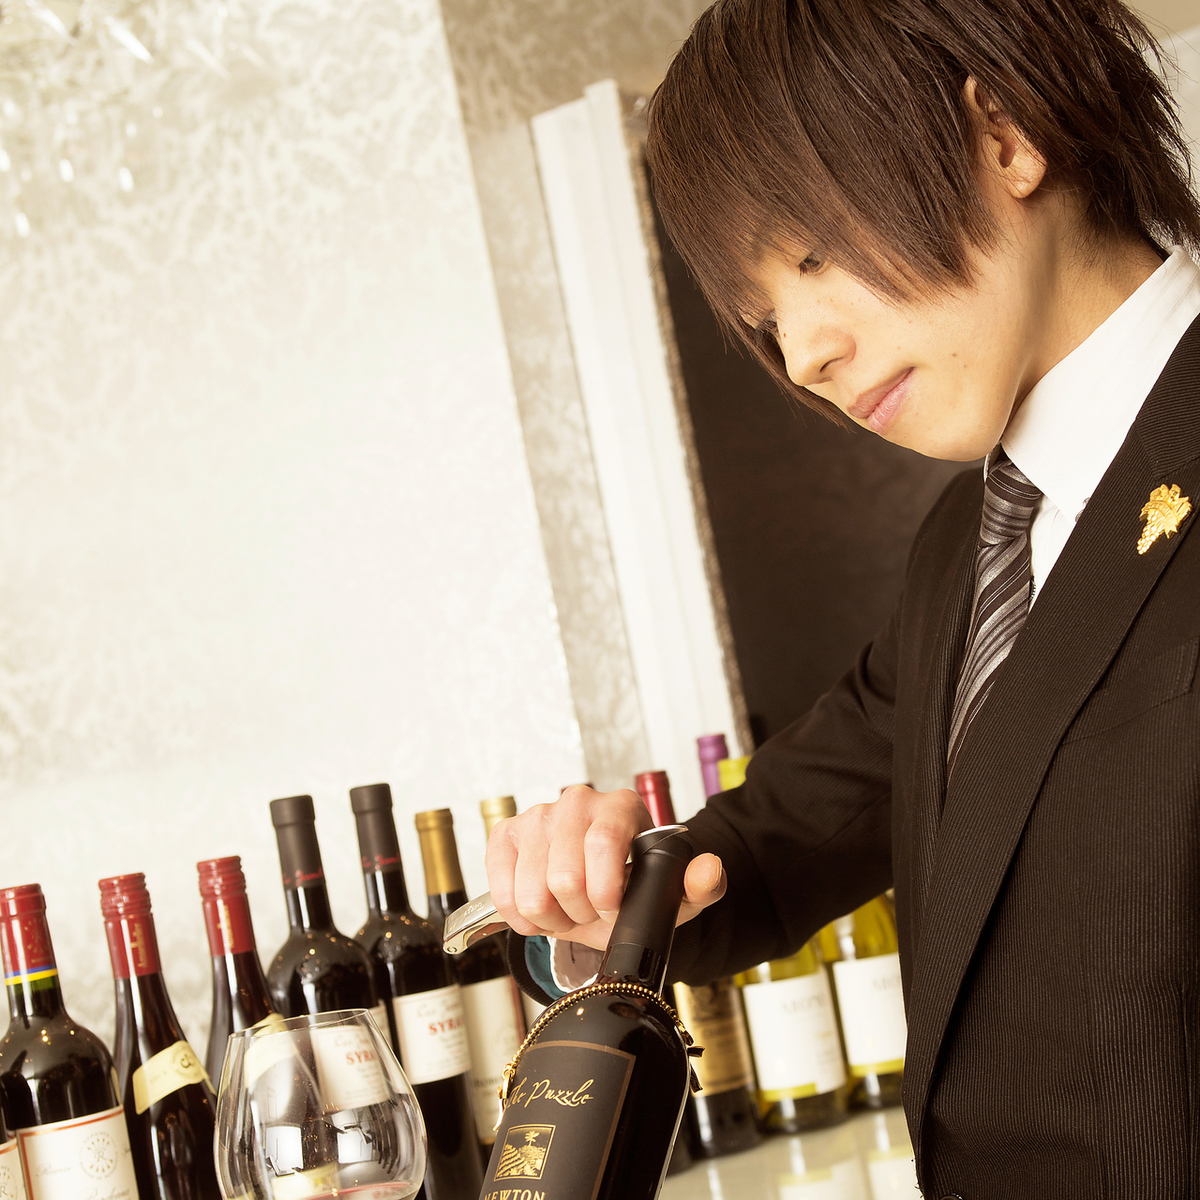 Sommelier with a background as a hotel bartender is enrolled